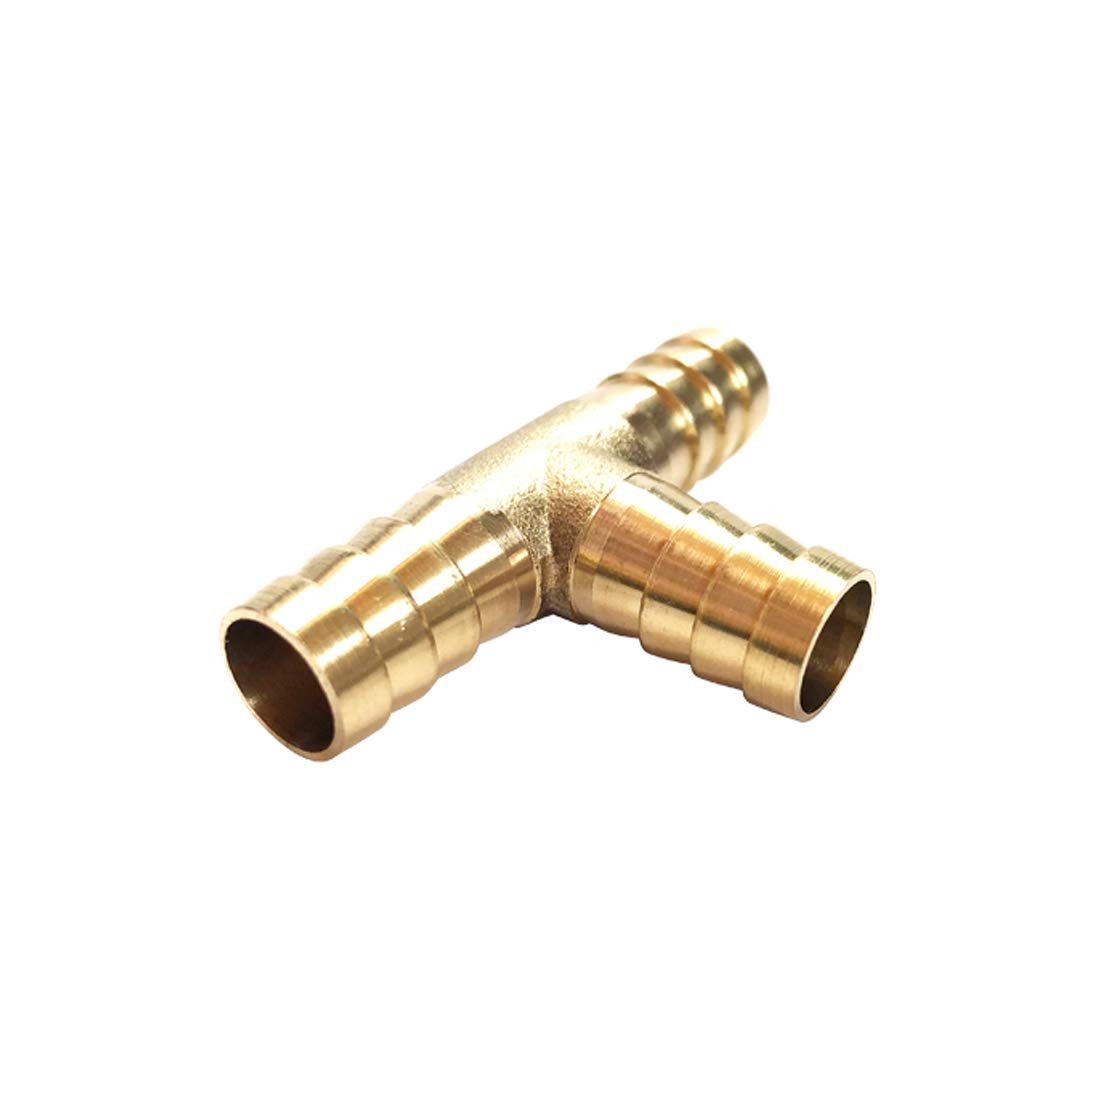 3//8 x 3//8 x 3//8 ID Hose Barb Branch Tee 3 Ways Barbed Hose Fitting Adapter Splicer Joint Union Brass Barb Fitting Tee